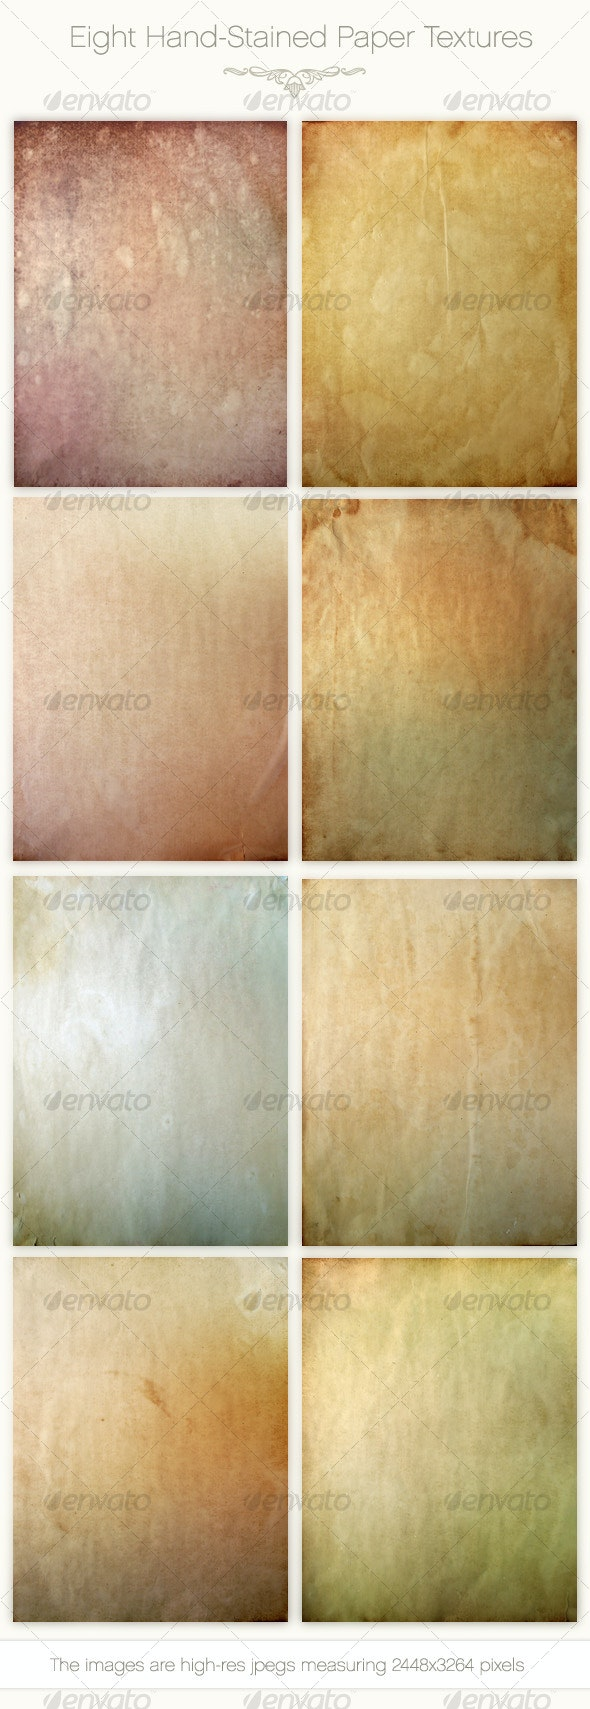 Eight Hand-Stained Paper Textures - Paper Textures